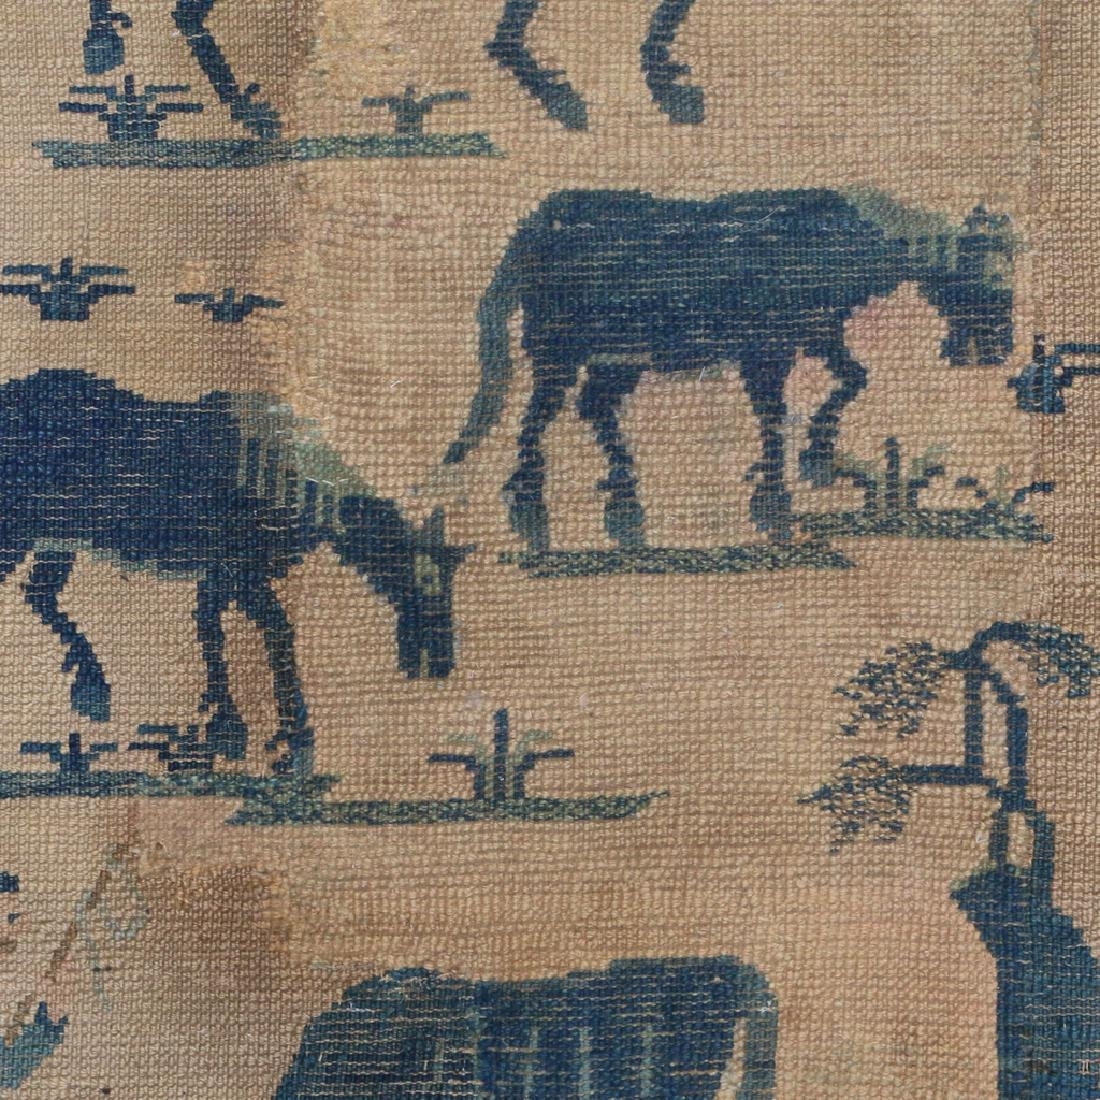 (2pc) ANTIQUE CHINESE PICTORIAL RUGS - 8